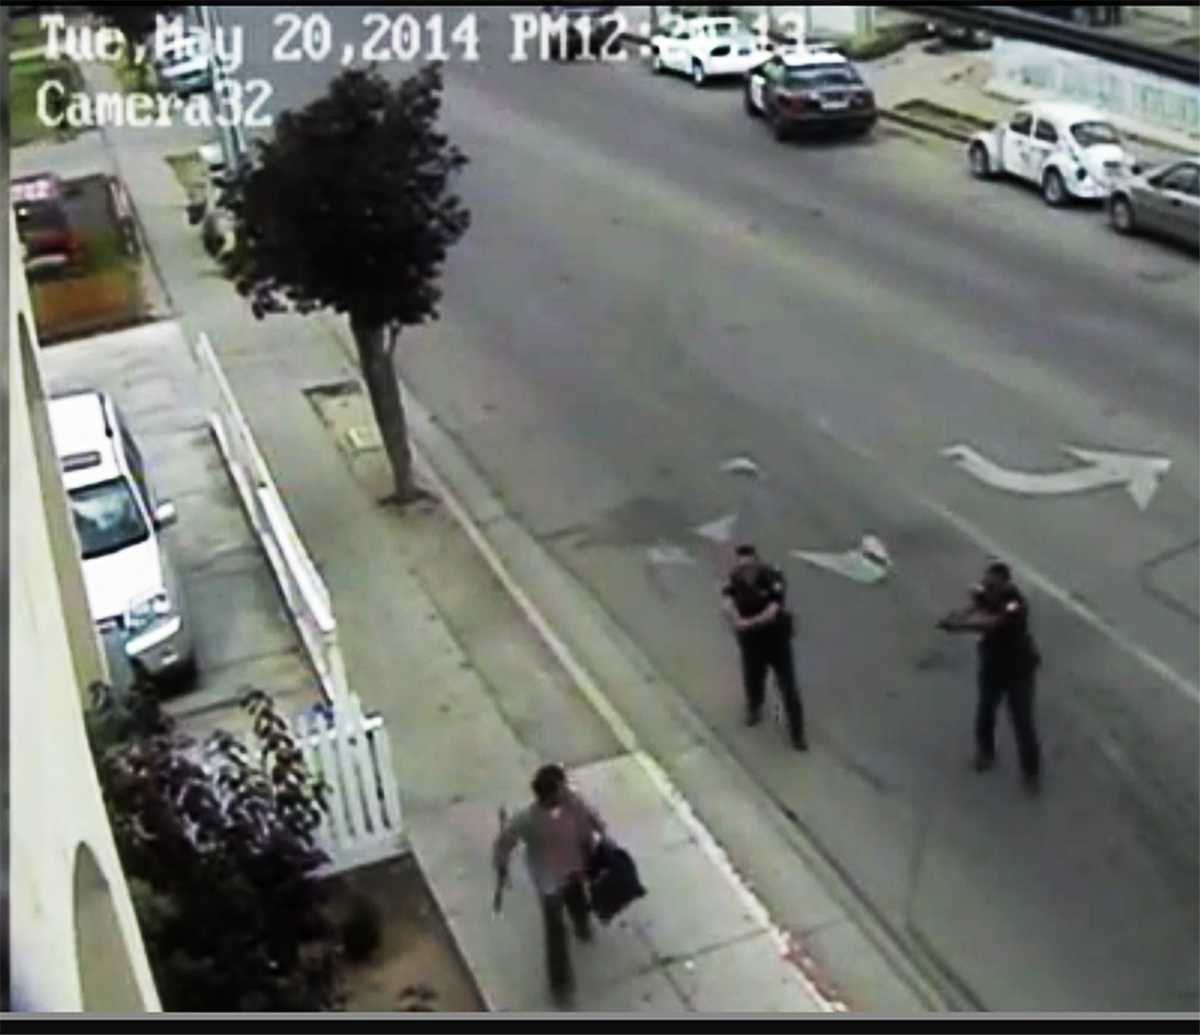 Denver Police Shooting Sued: Salinas Faces Lawsuit Following Deadly Police Shooting In May